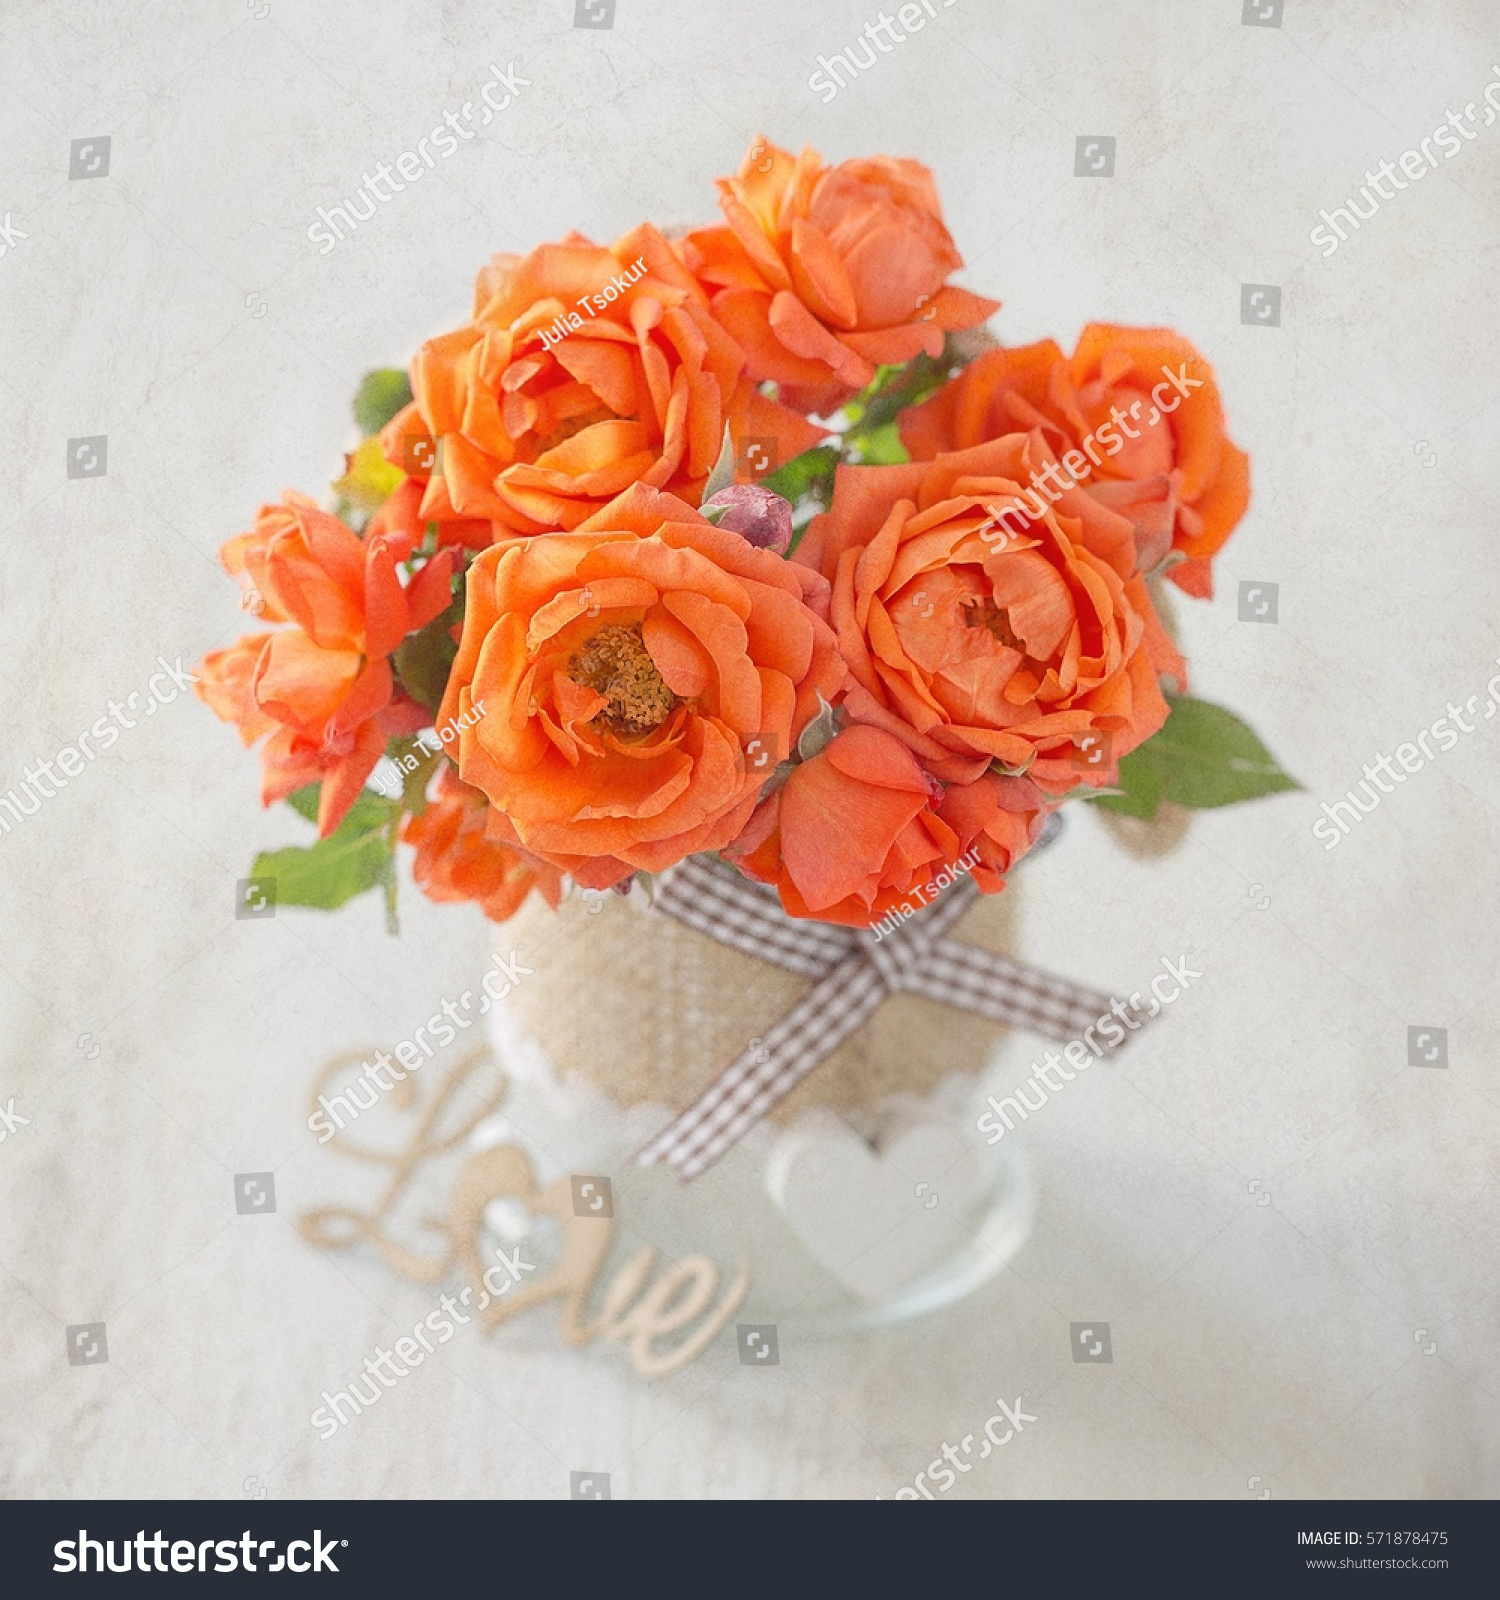 Lovely bunch flowers beautiful fresh roses stock photo edit now lovely bunch of flowers autiful fresh roses flowers in a vase decorated with a heart izmirmasajfo